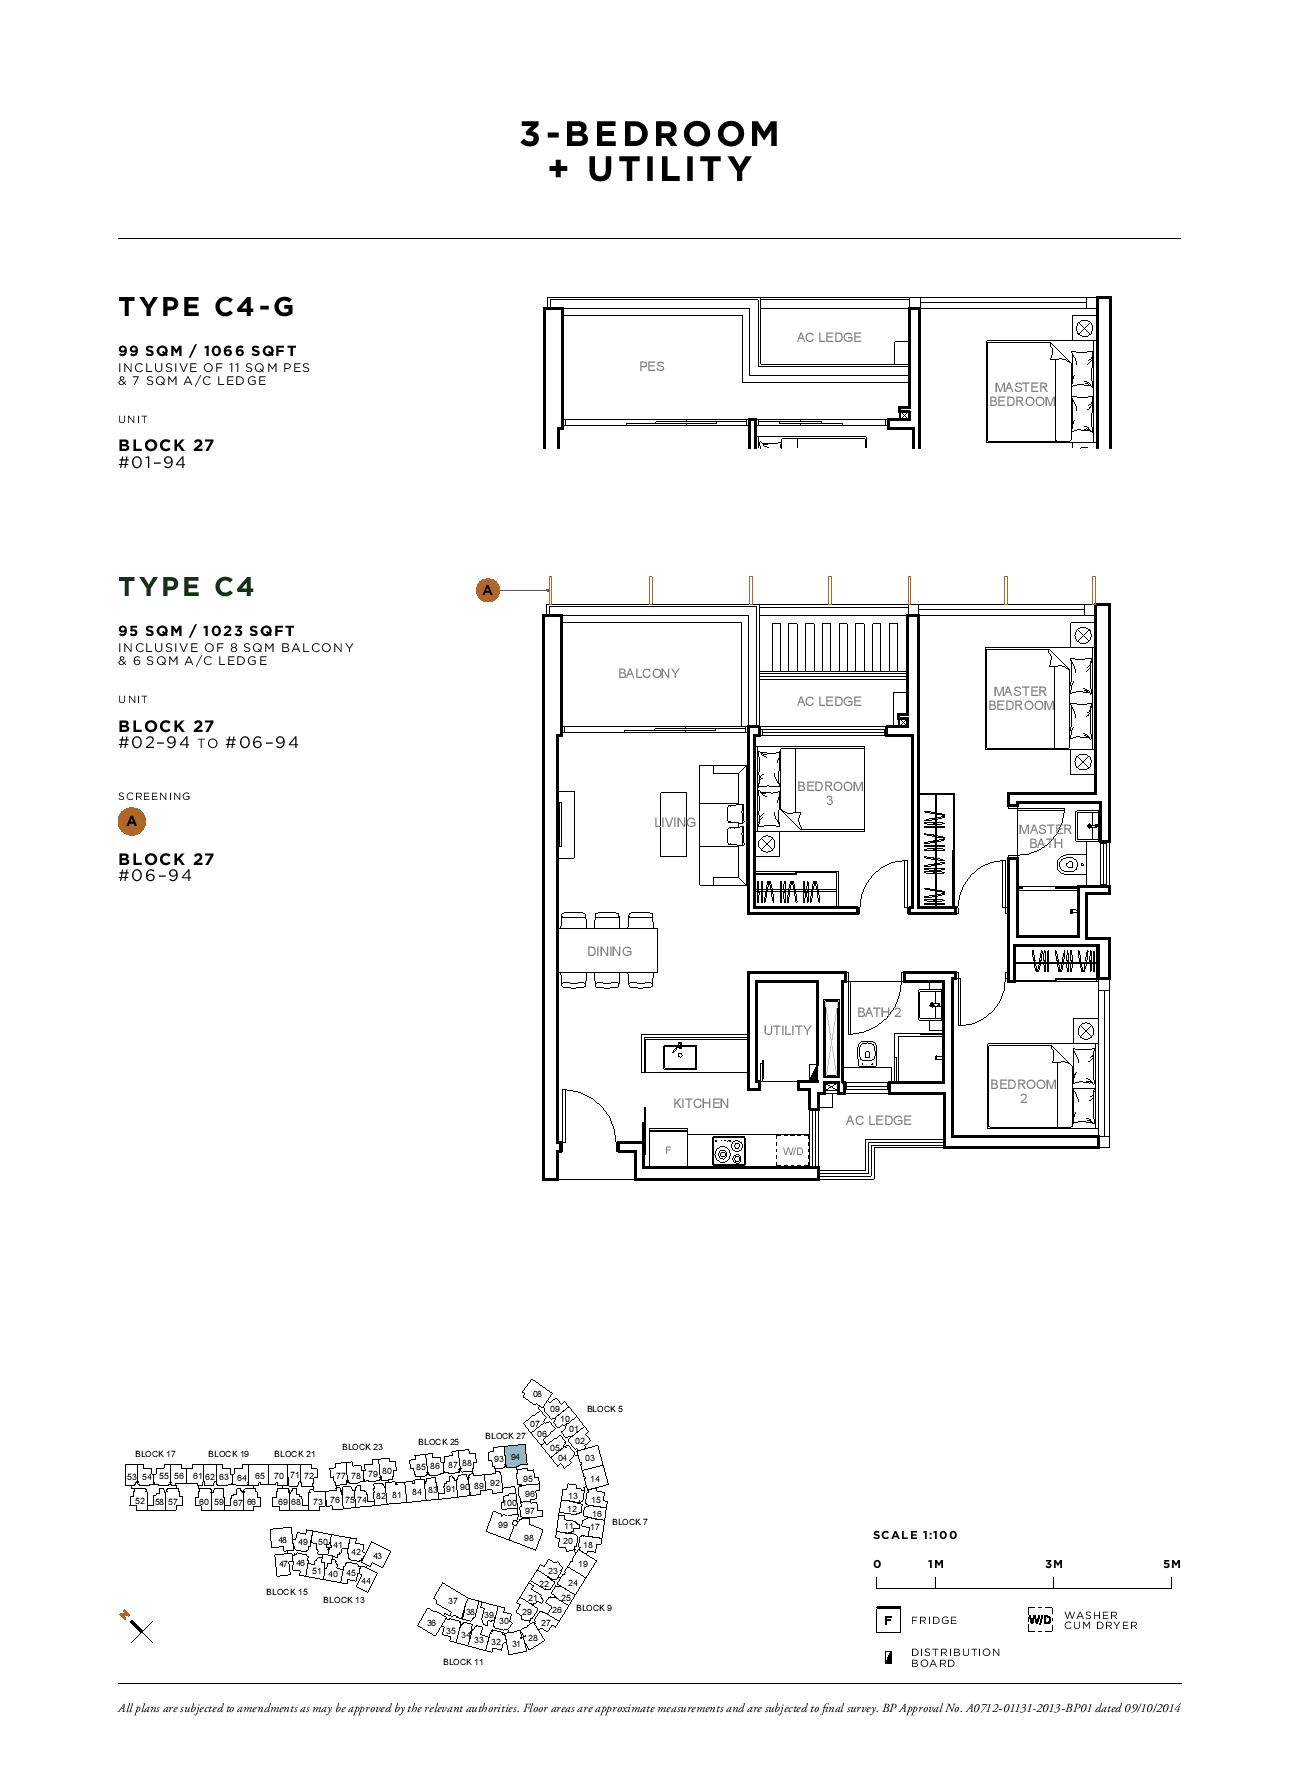 Sophia Hills 3 Bedroom + Utility Type C4-G Floor Plans